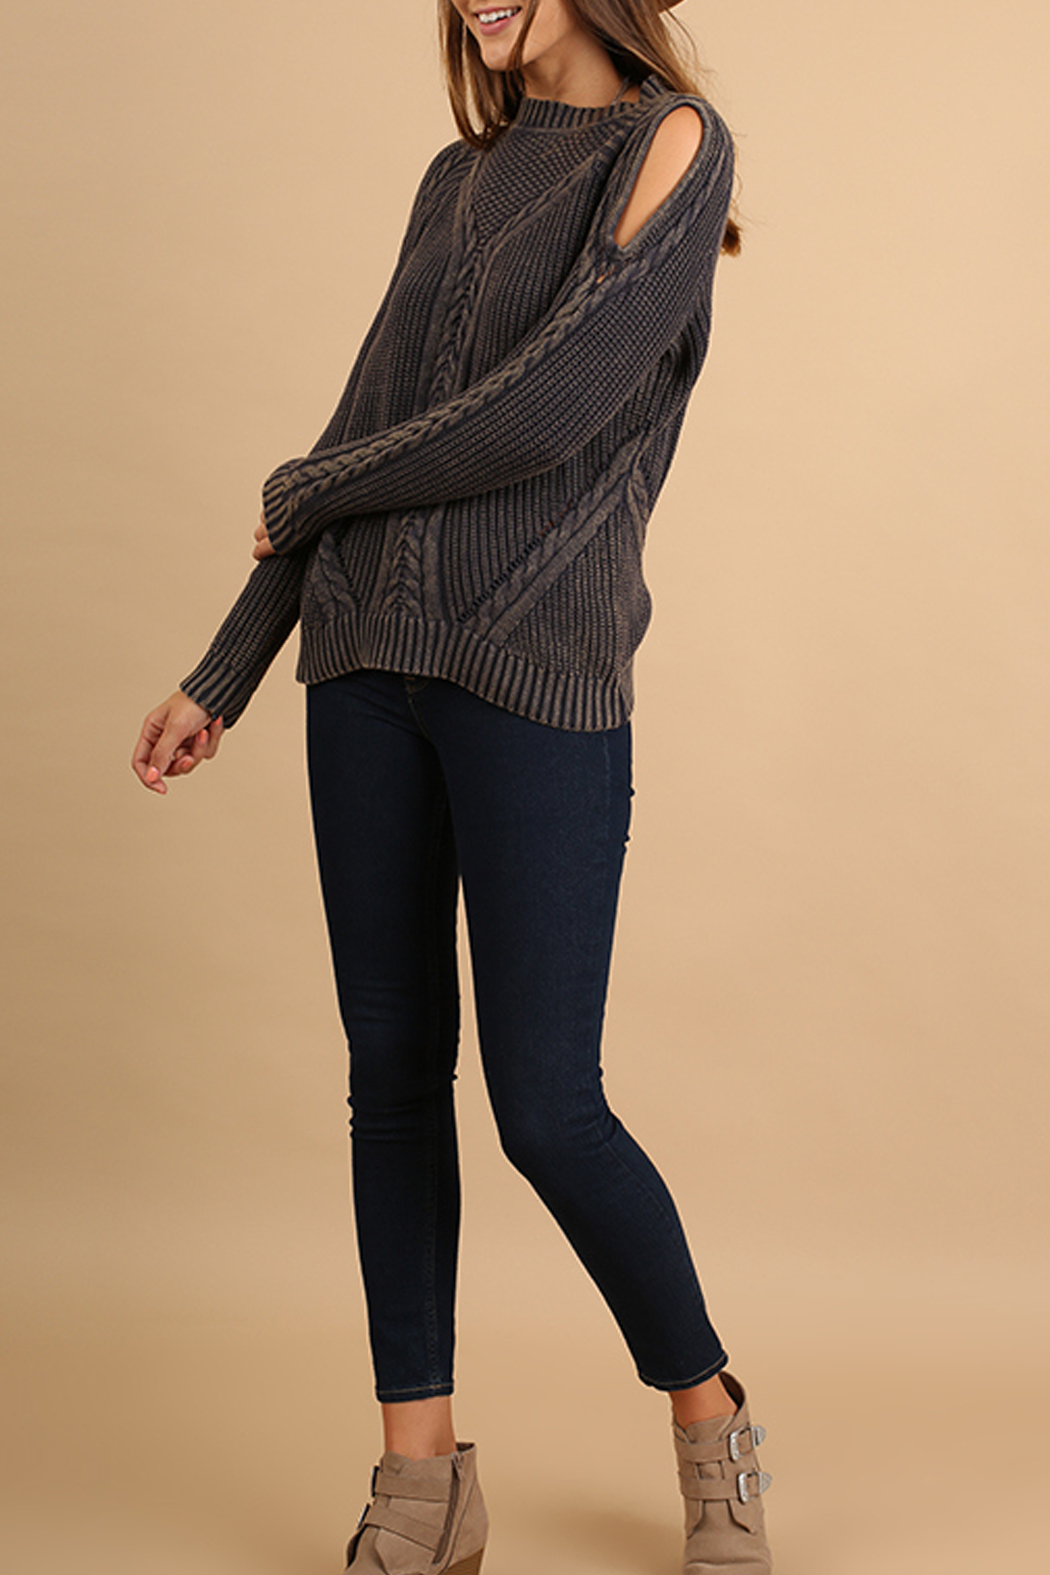 Umgee USA Cutout Knit Sweater - Main Image